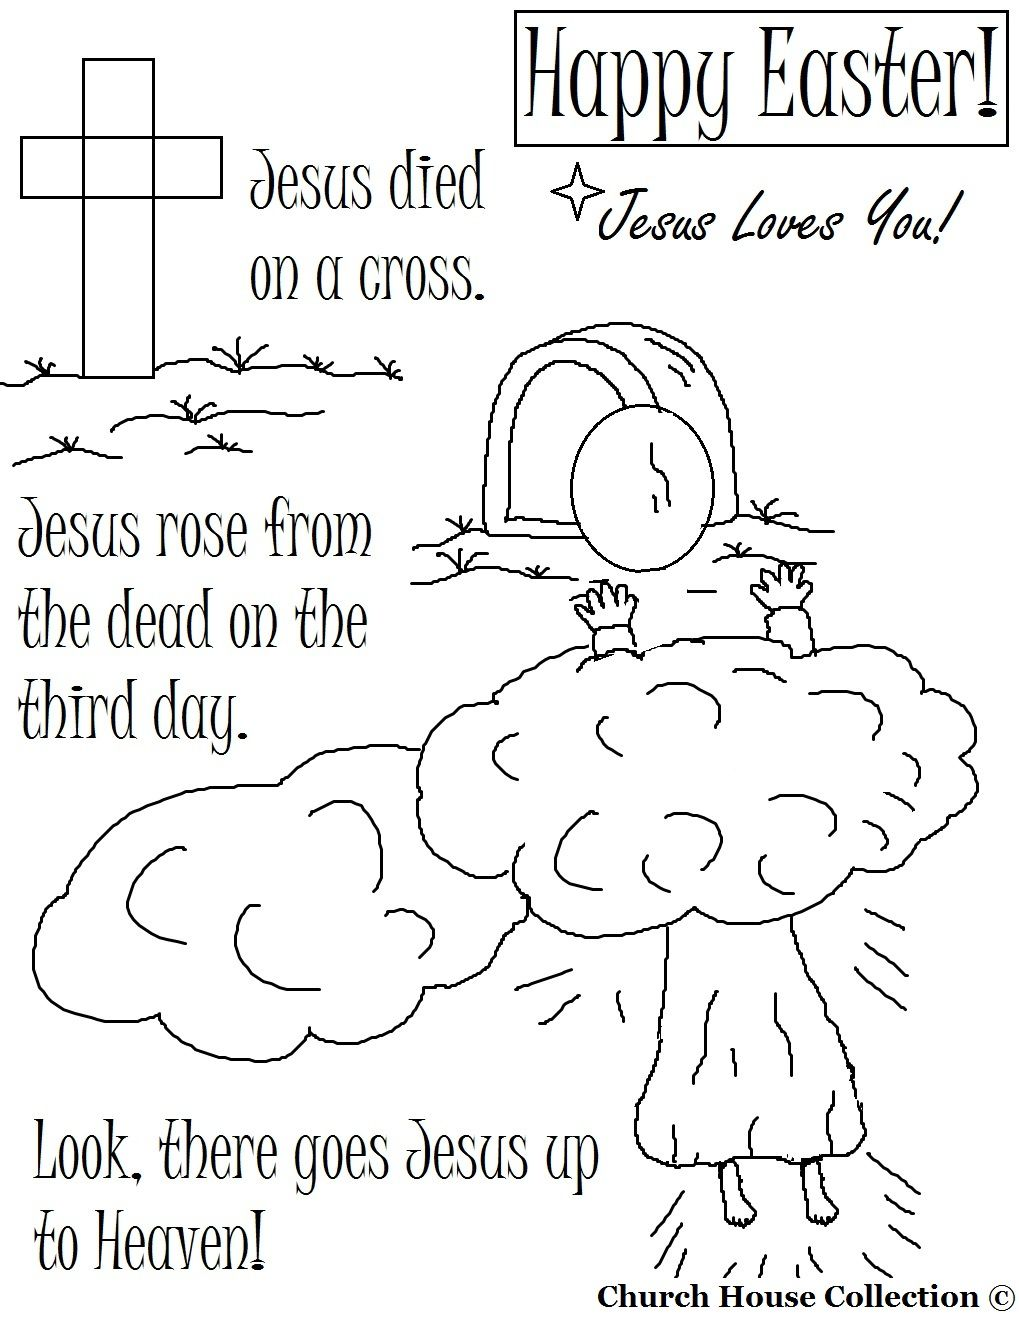 Jesus Easter Resurrection Coloring Pages.jpg 1,019×1,319